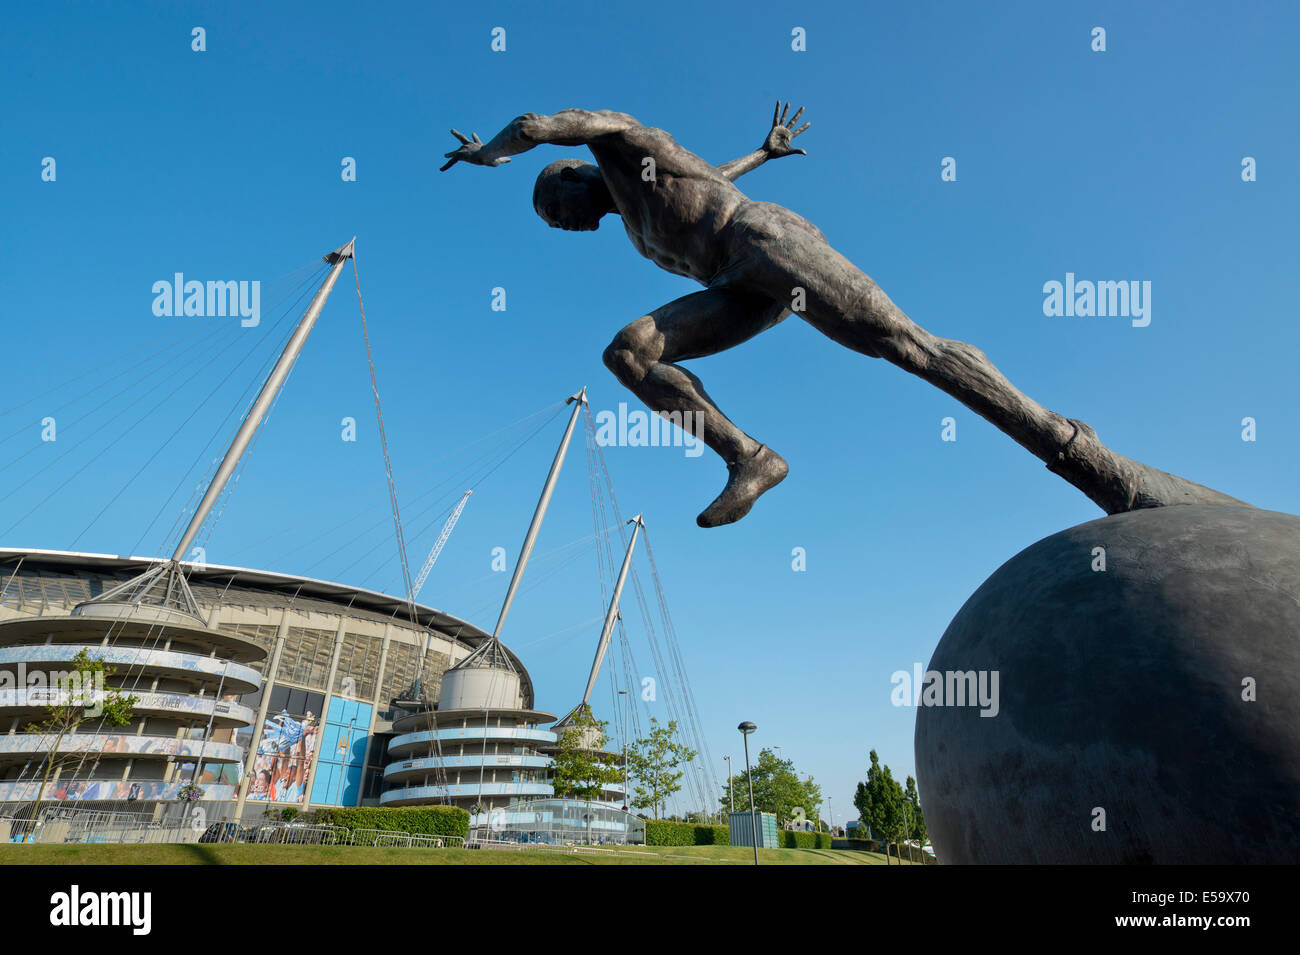 A statue of a sprinter the moment after the starting pistol near to the City of Manchester Etihad Stadium (Editorial - Stock Image